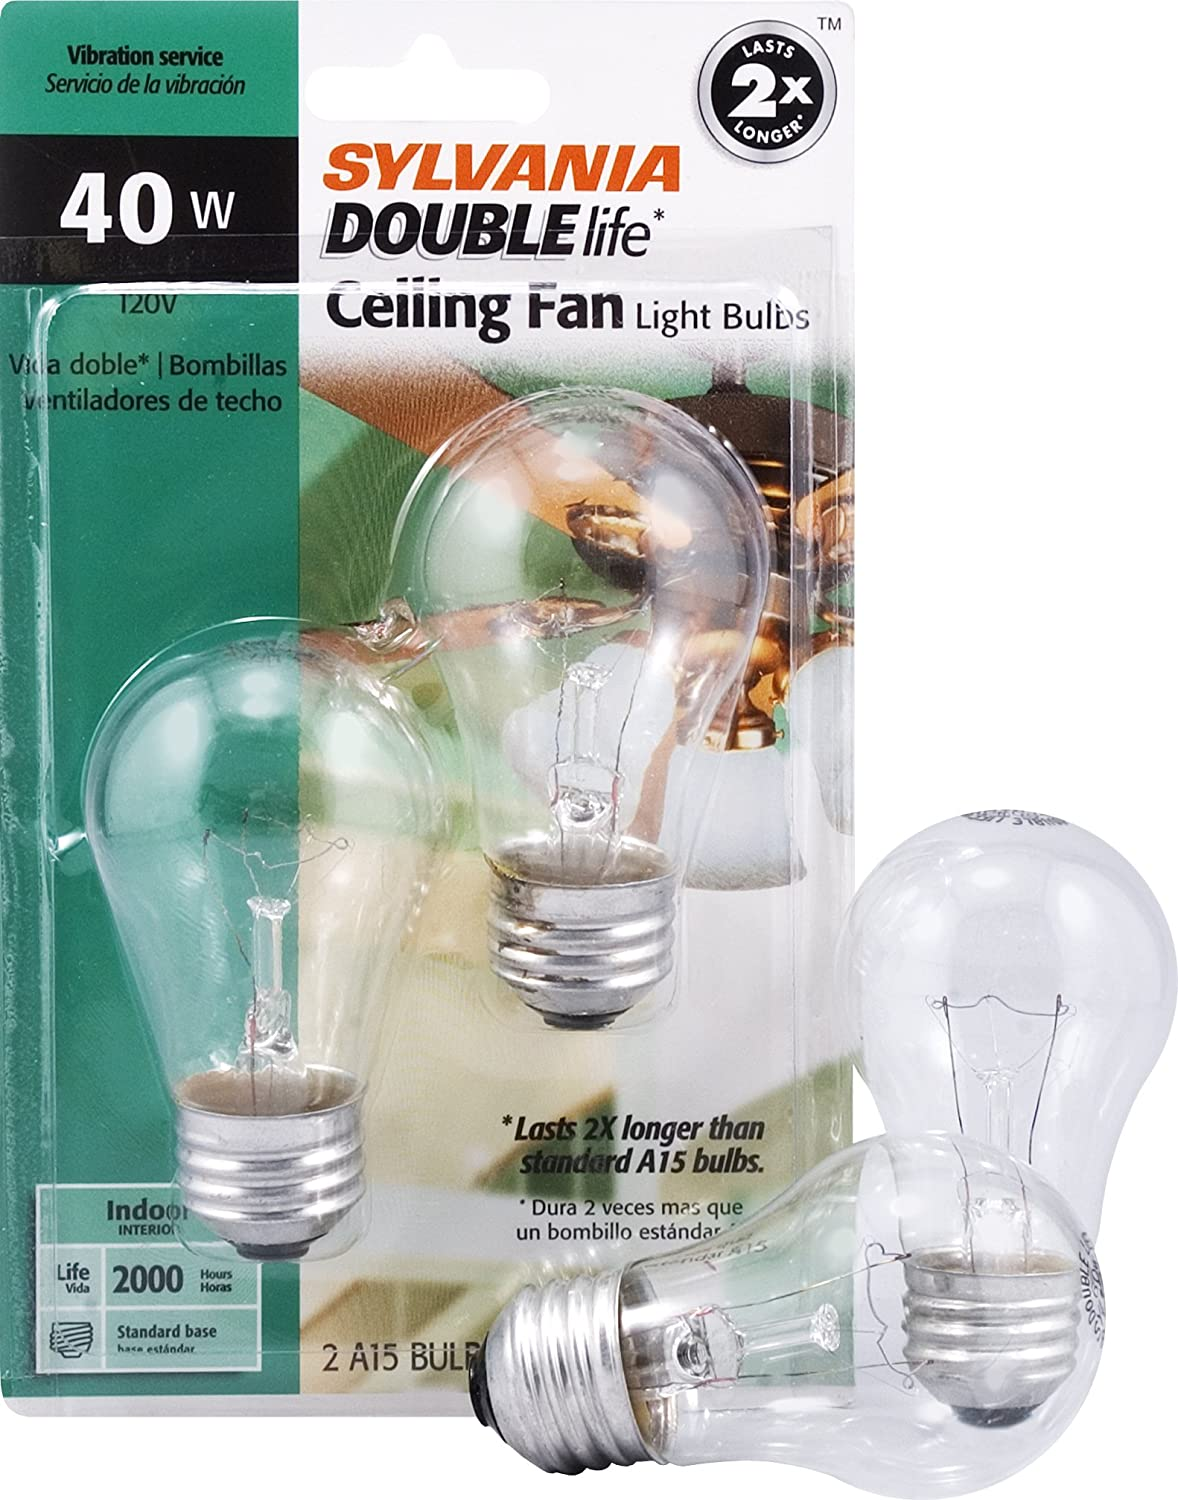 SYLVANIA Home Lighting 10034 Incandescnet Bulb, A15-40W, Double Life, Clear Finish, Medium Base, Pack of 2